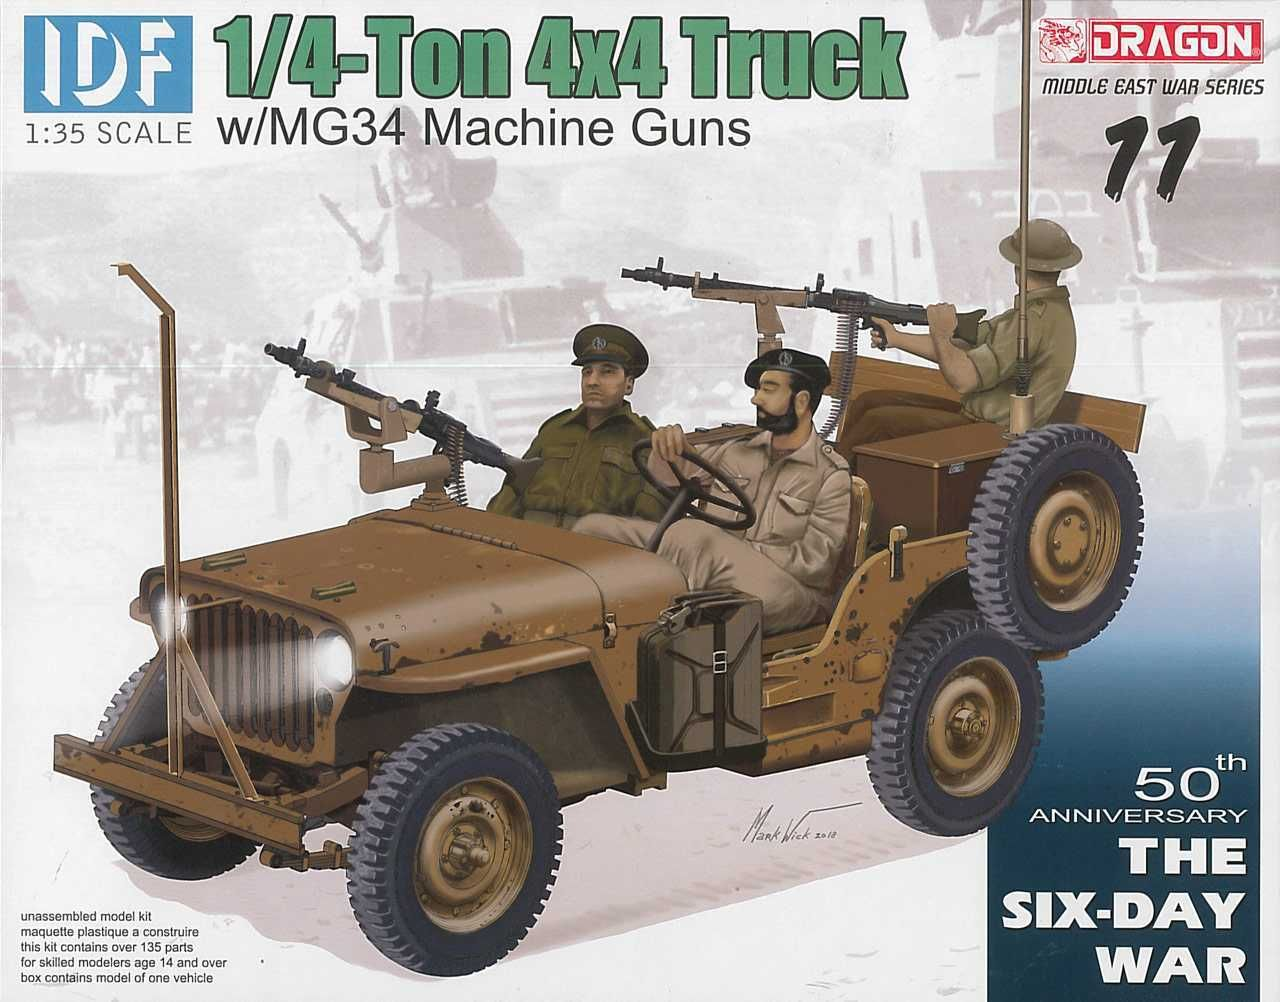 DRAGON Model Kit military 3609 - IDF 1/4-Ton 4x4 Truck w/MG34 Machine Guns (1:35) - obrázek 1